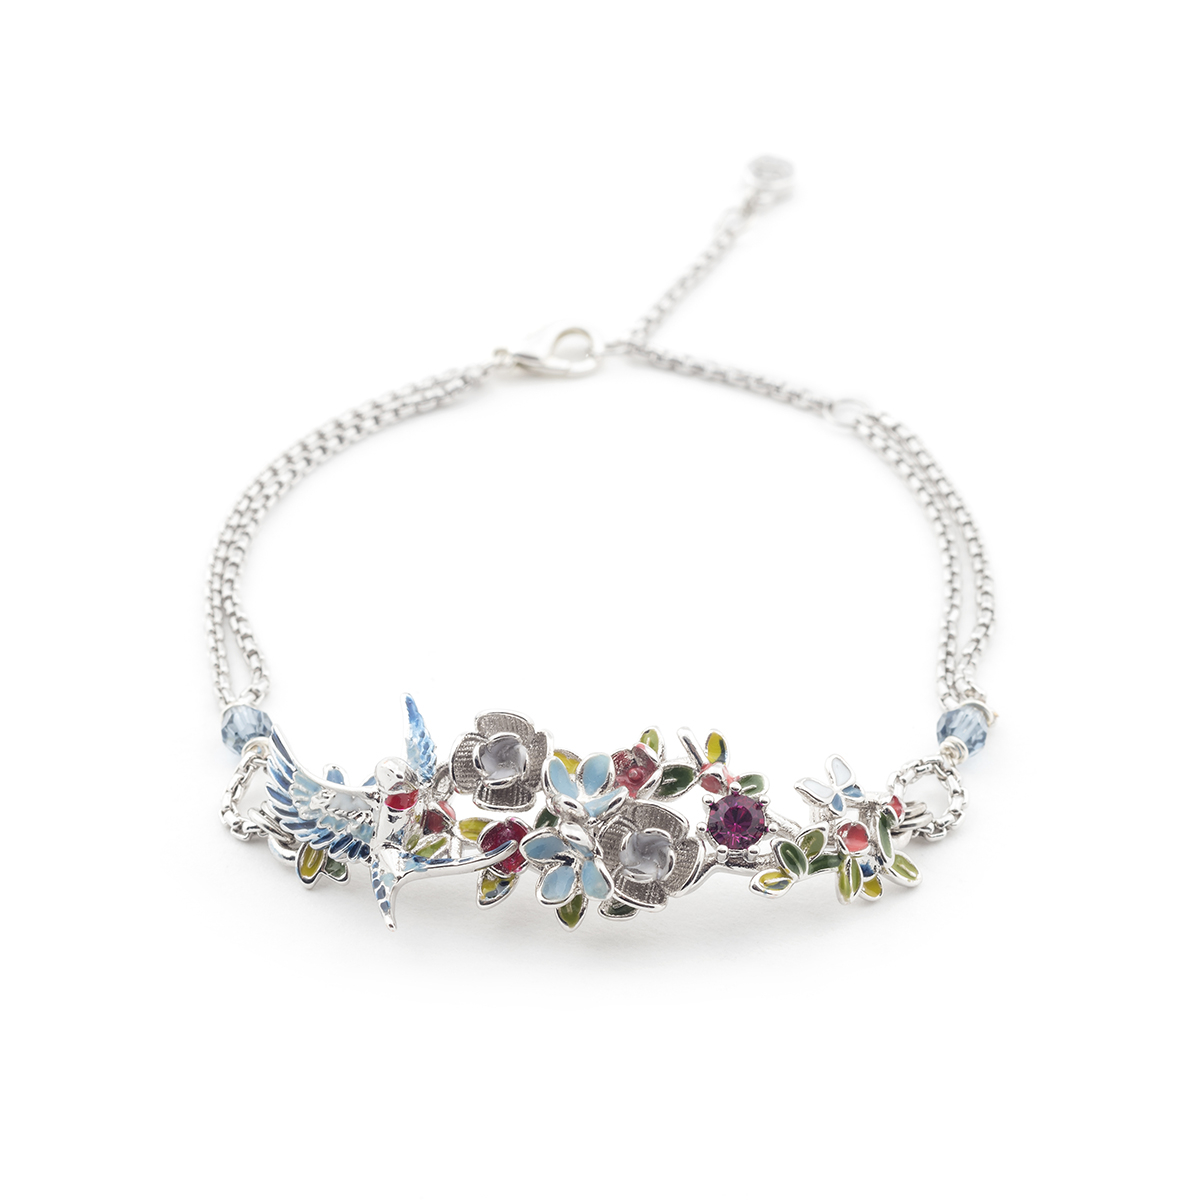 in bracelet en u rhodium d zirconi pietre white bianco bracciale negozio rose zircons with or stones plated argento gold luxanty tennis con silver